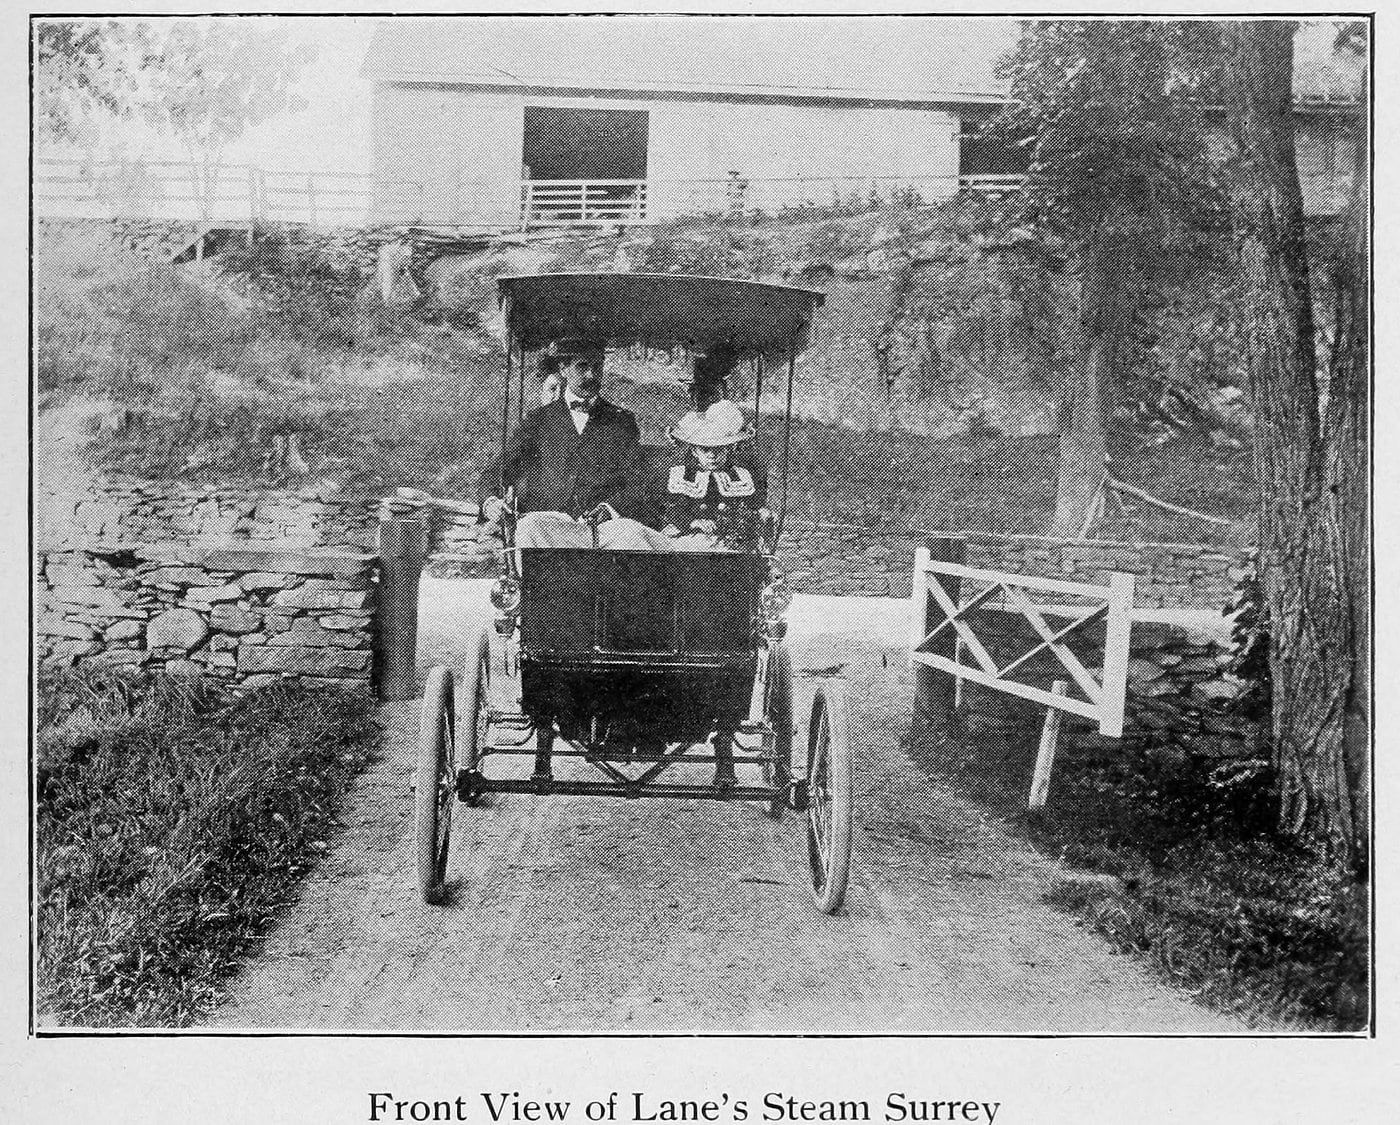 Lane Steam Surrey (1902)